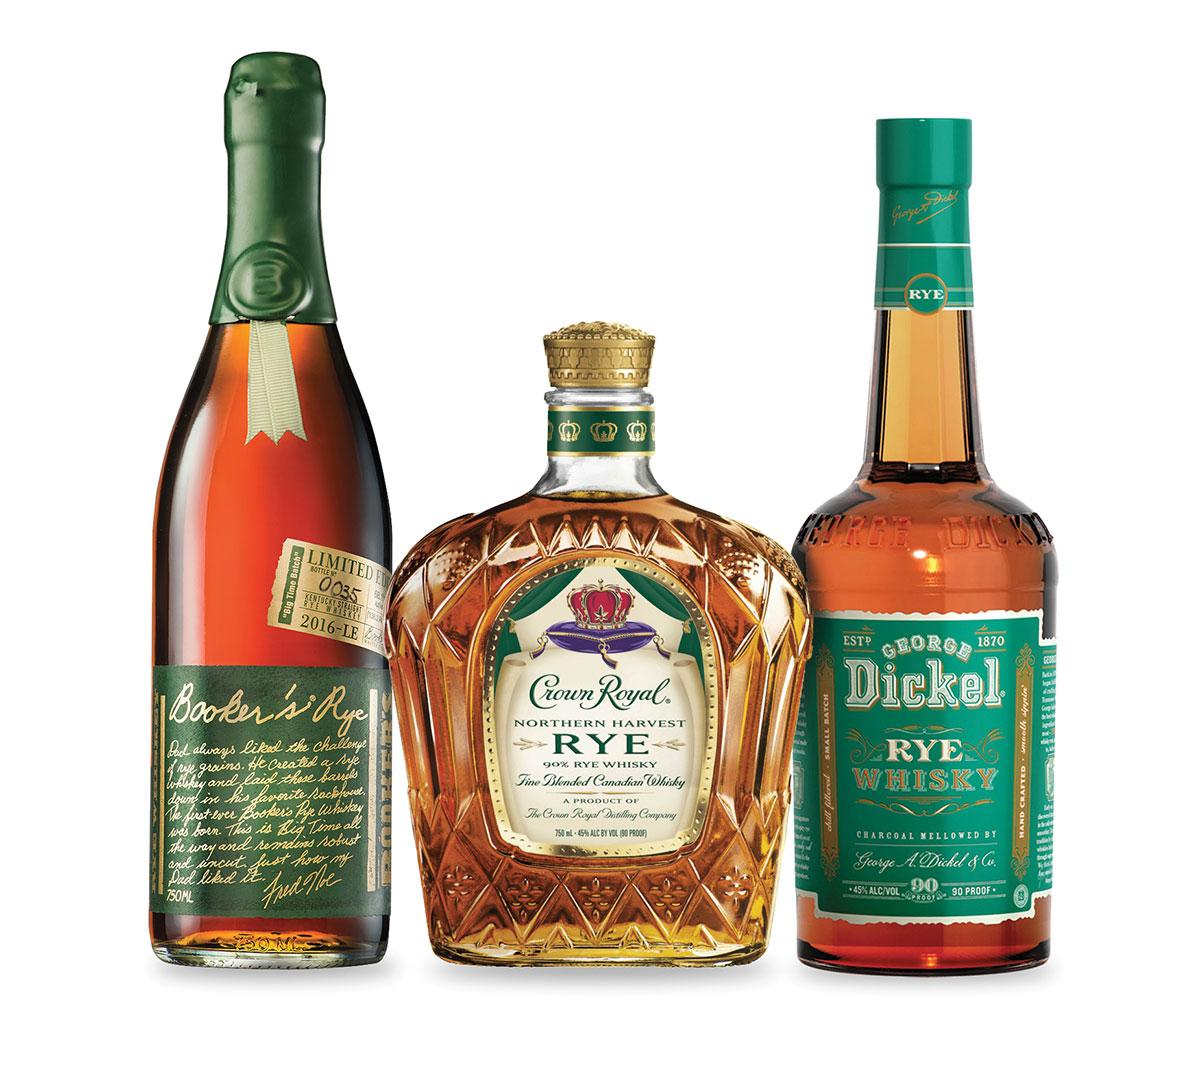 From left: Booker's Rye The Big Time Batch, Crown Royal Northern Harvest Rye and George Dickel Rye Whisky.